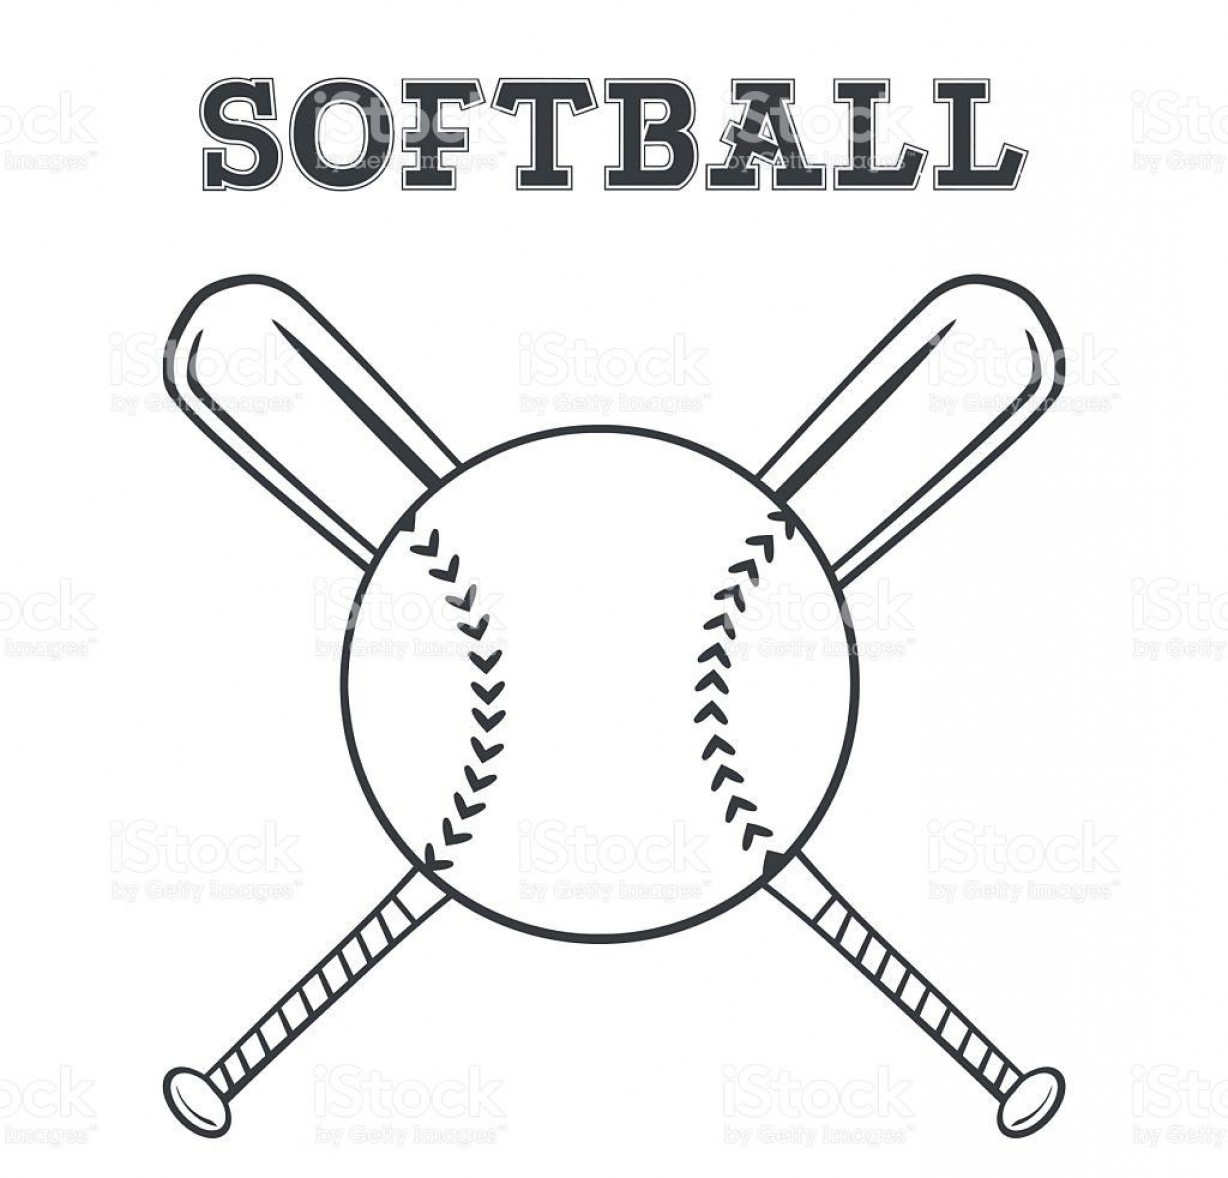 Softball Laces Vector Art B W: Black And White Softball Over Crossed Bats Logo Vector